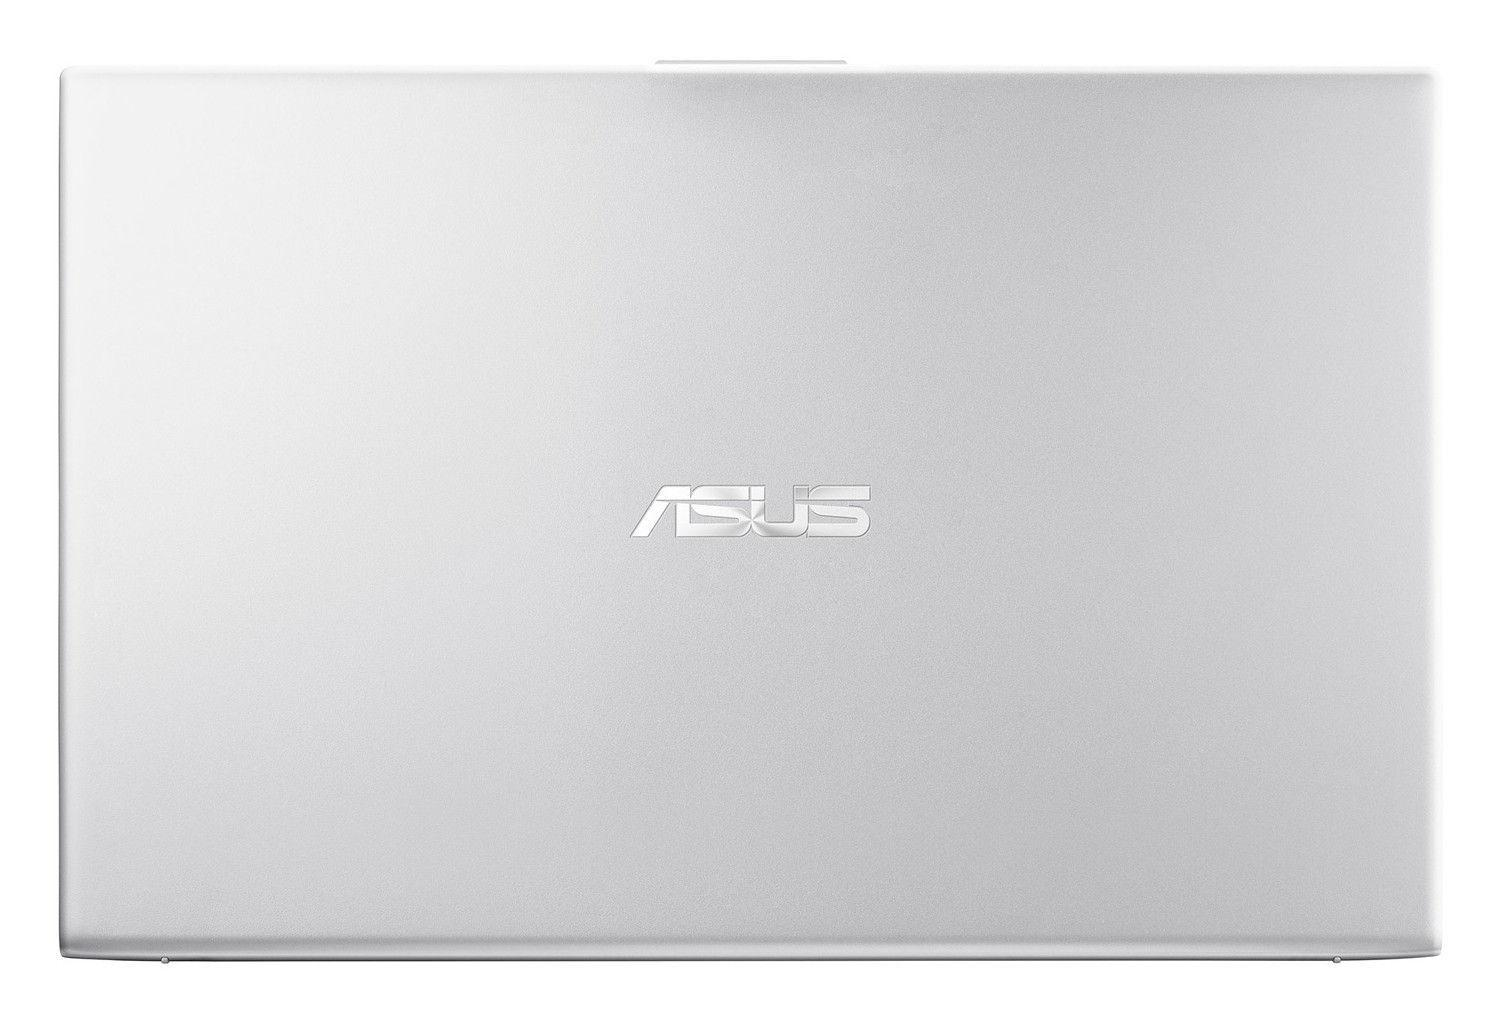 Ordinateur portable Asus VivoBook X712FB-AU168T Argent - SSD 512 Go, MX110 - photo 6